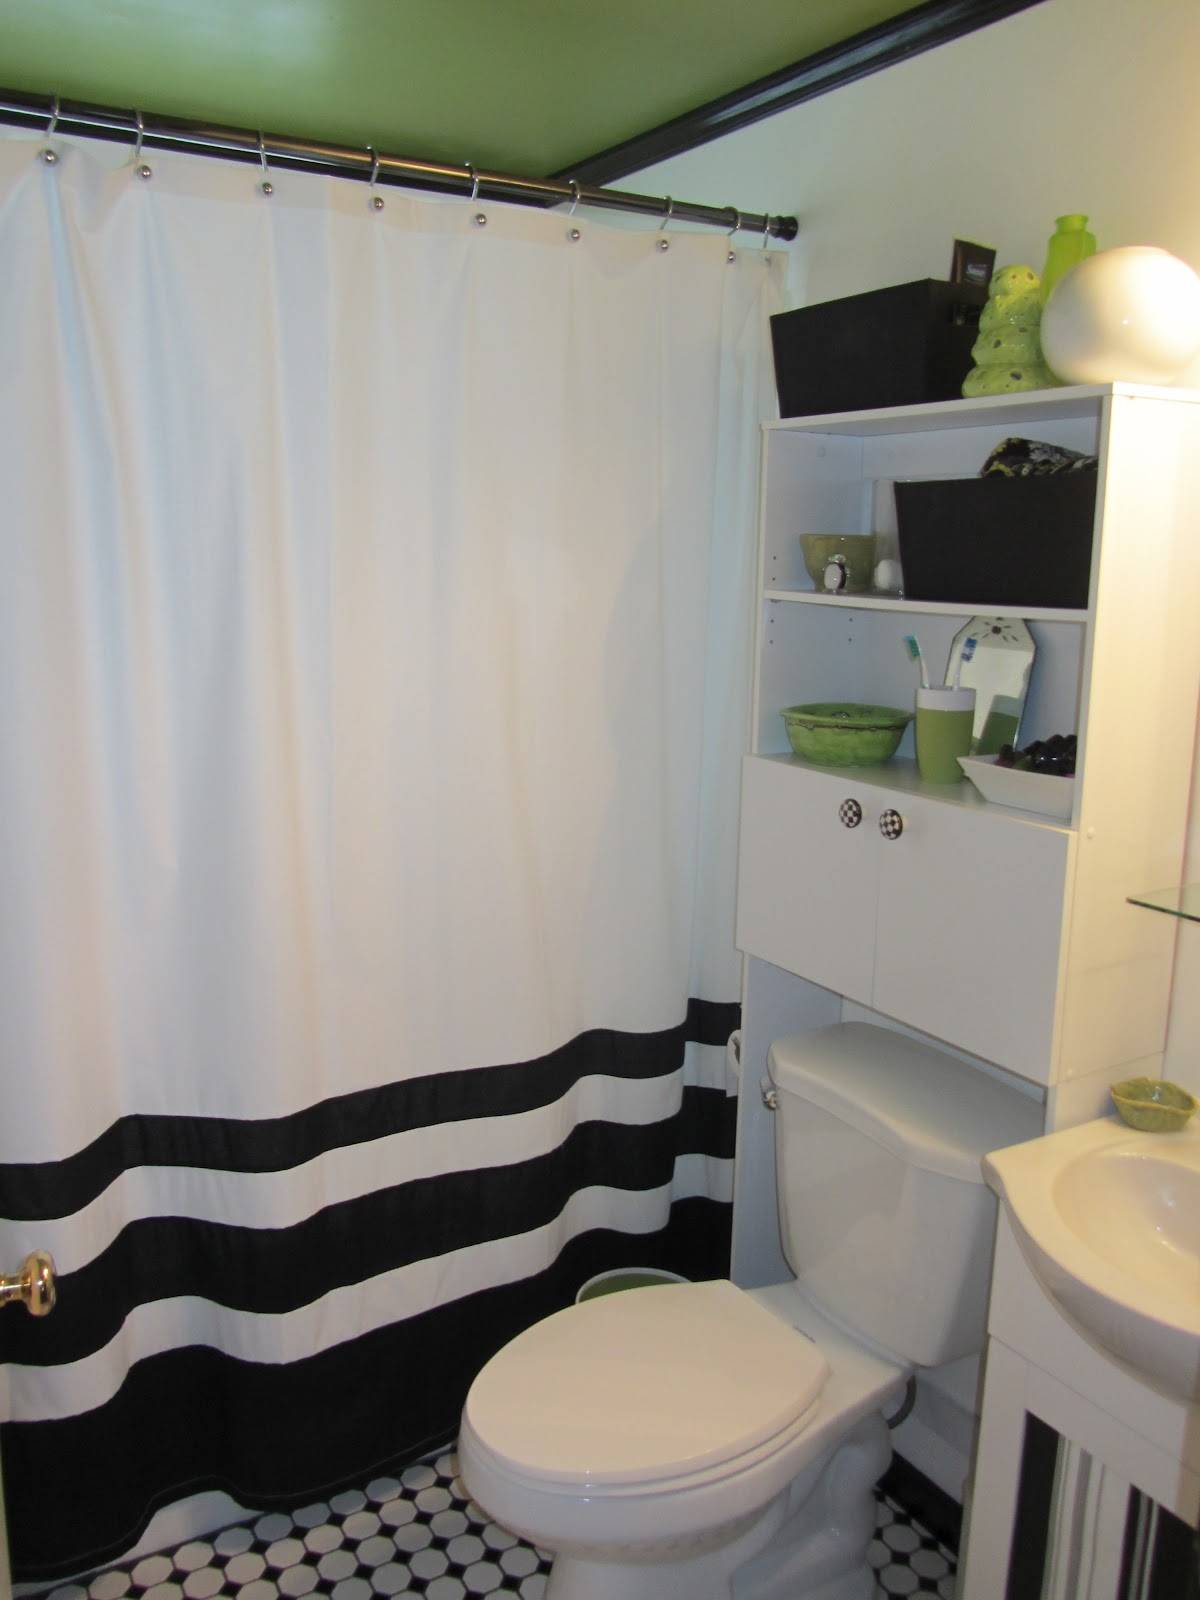 The ultimate before after bathroom edition j paris for Ultimate bathrooms